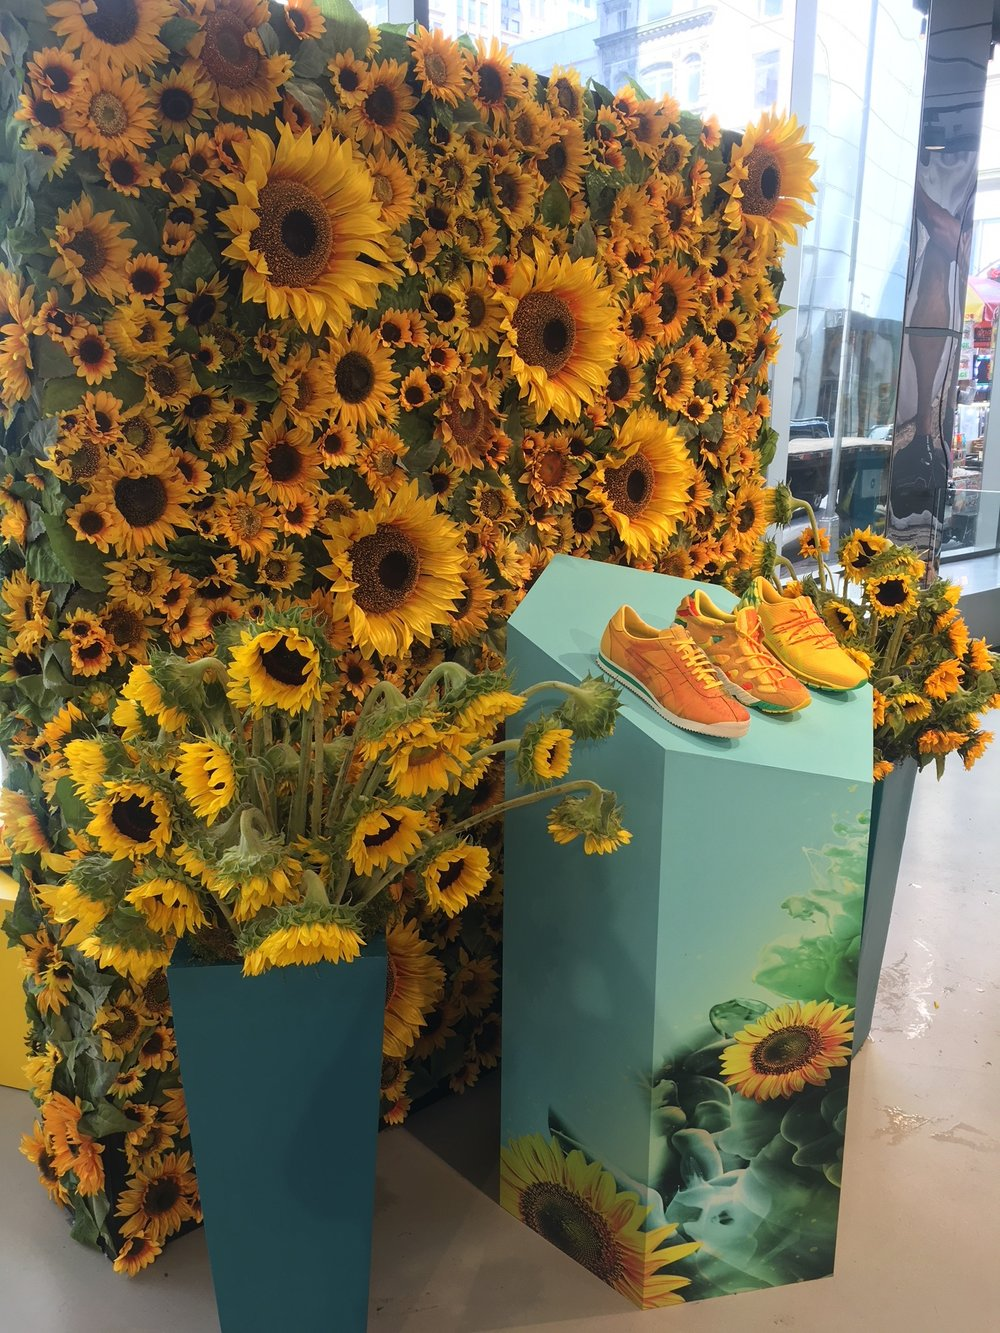 ASICS Sunflower Campaign - NYC & LA